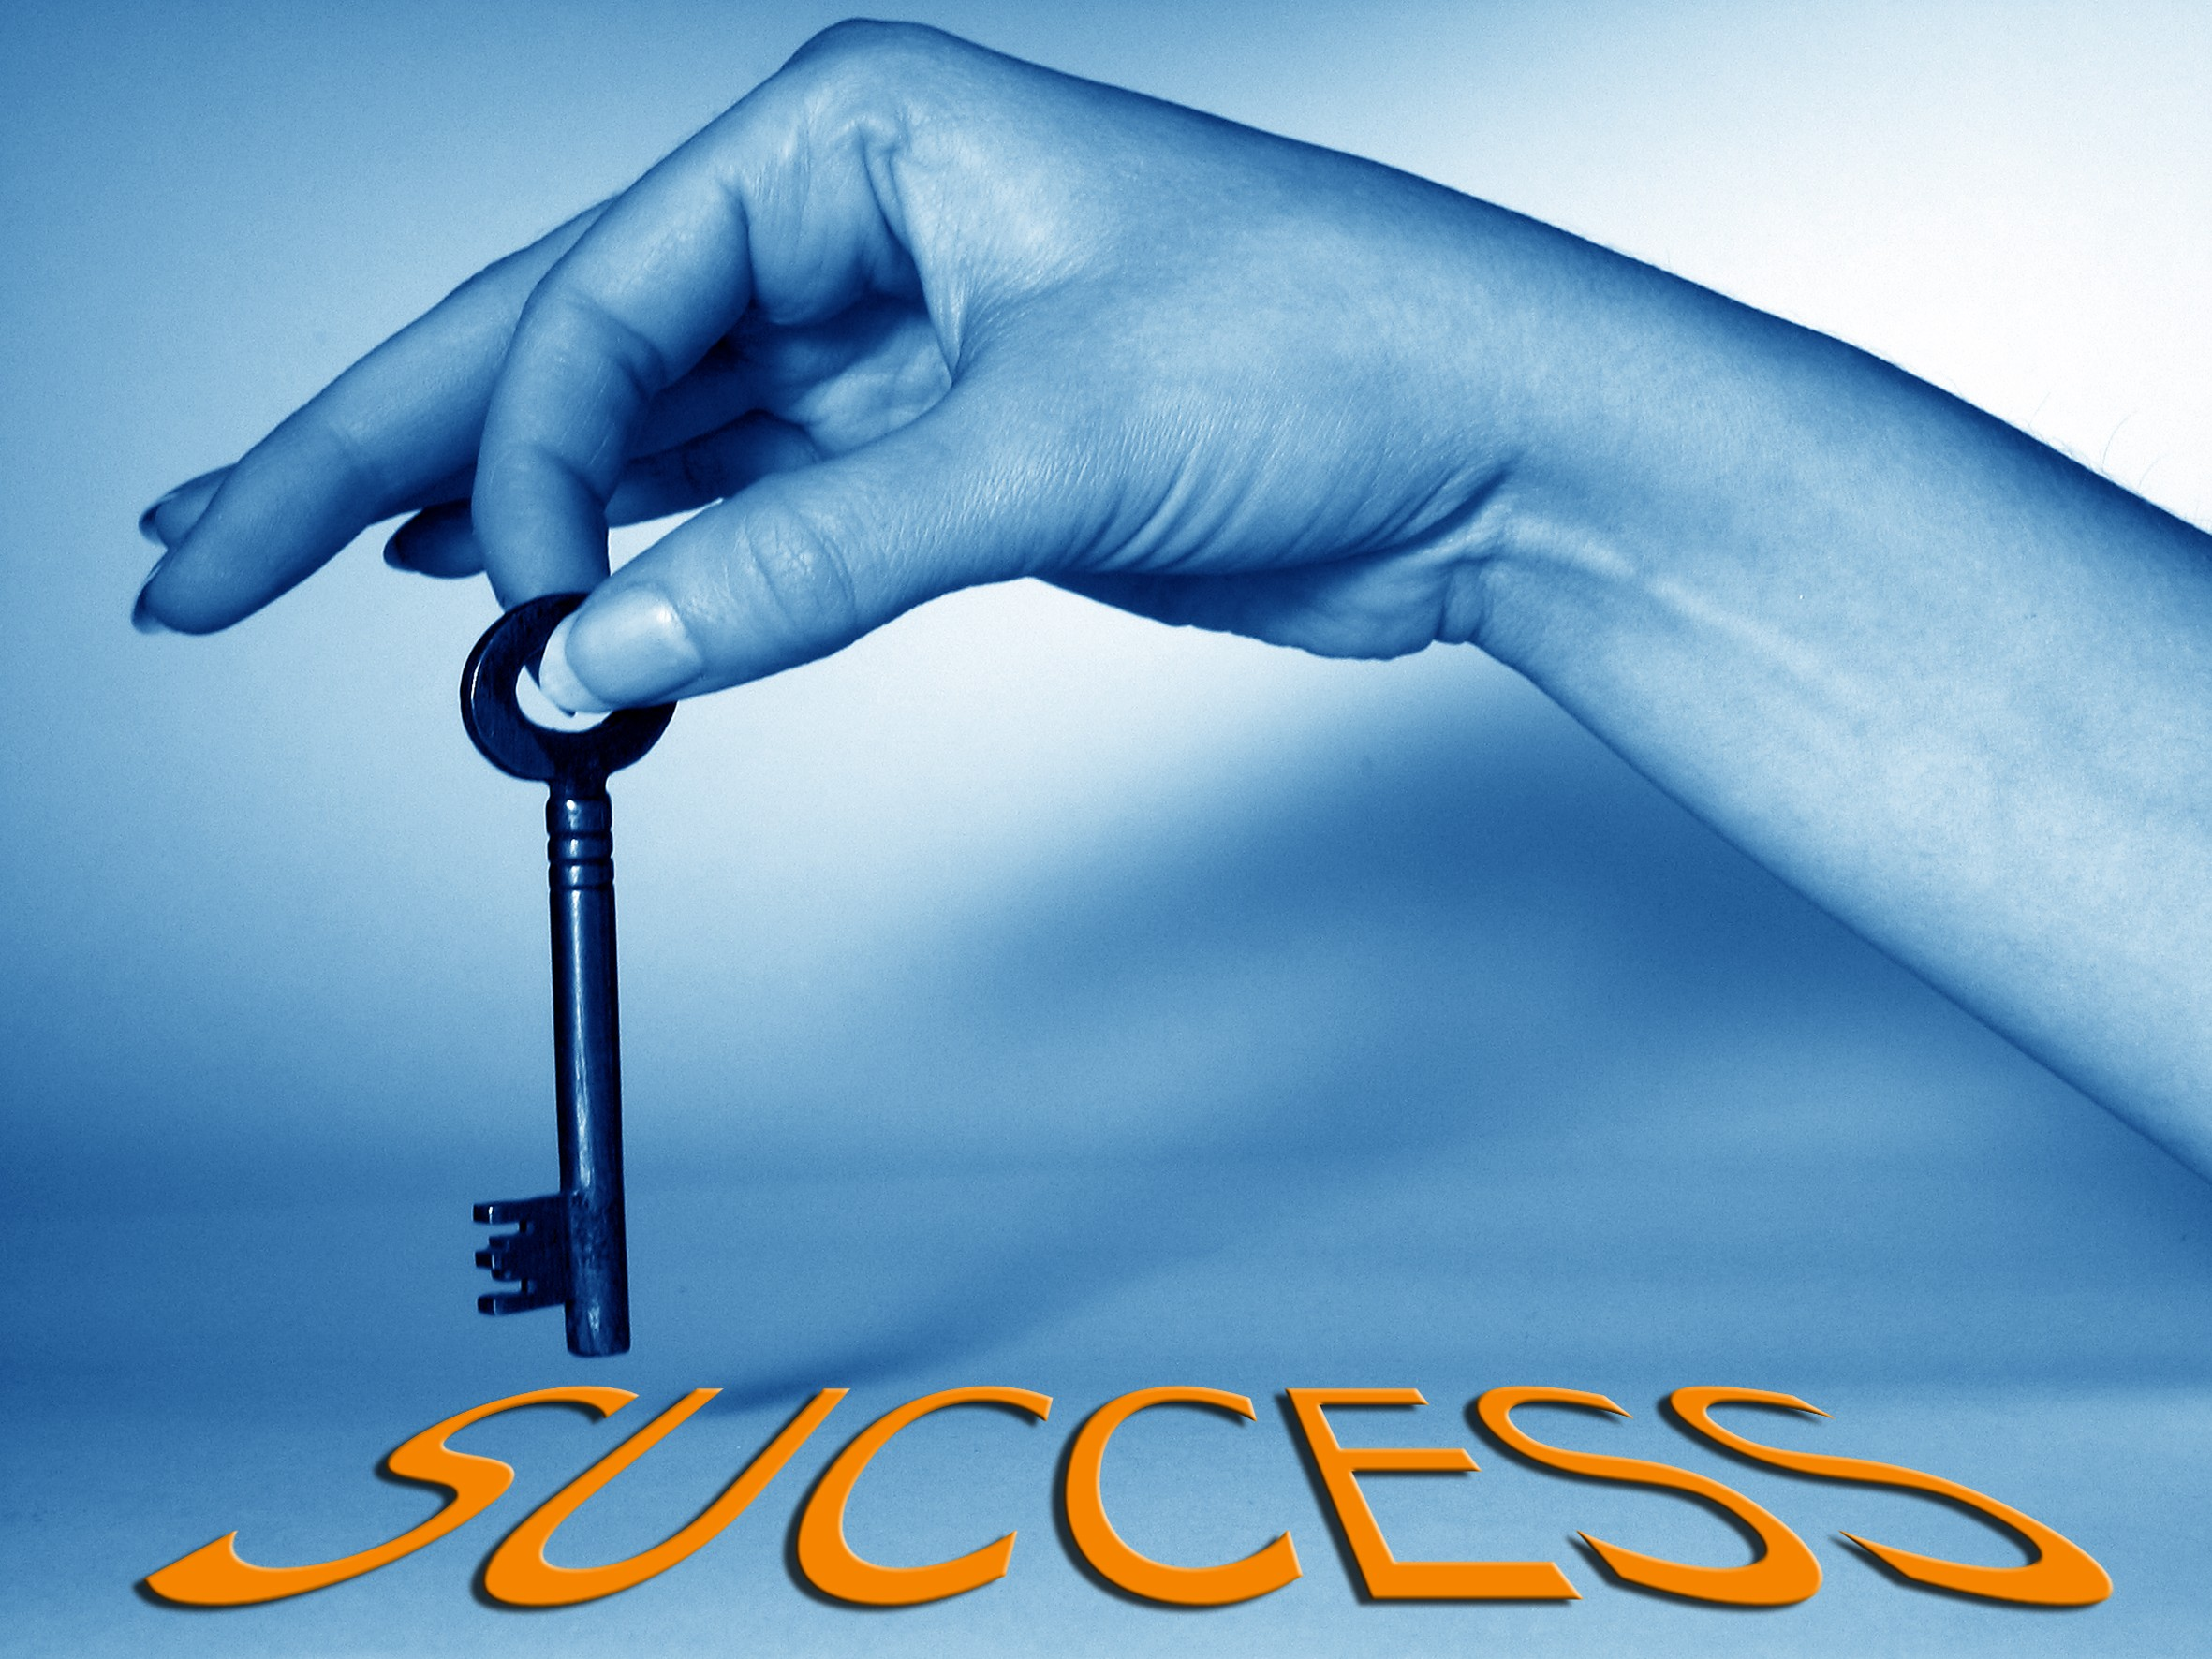 43 Success Hd Wallpaper On Wallpapersafari